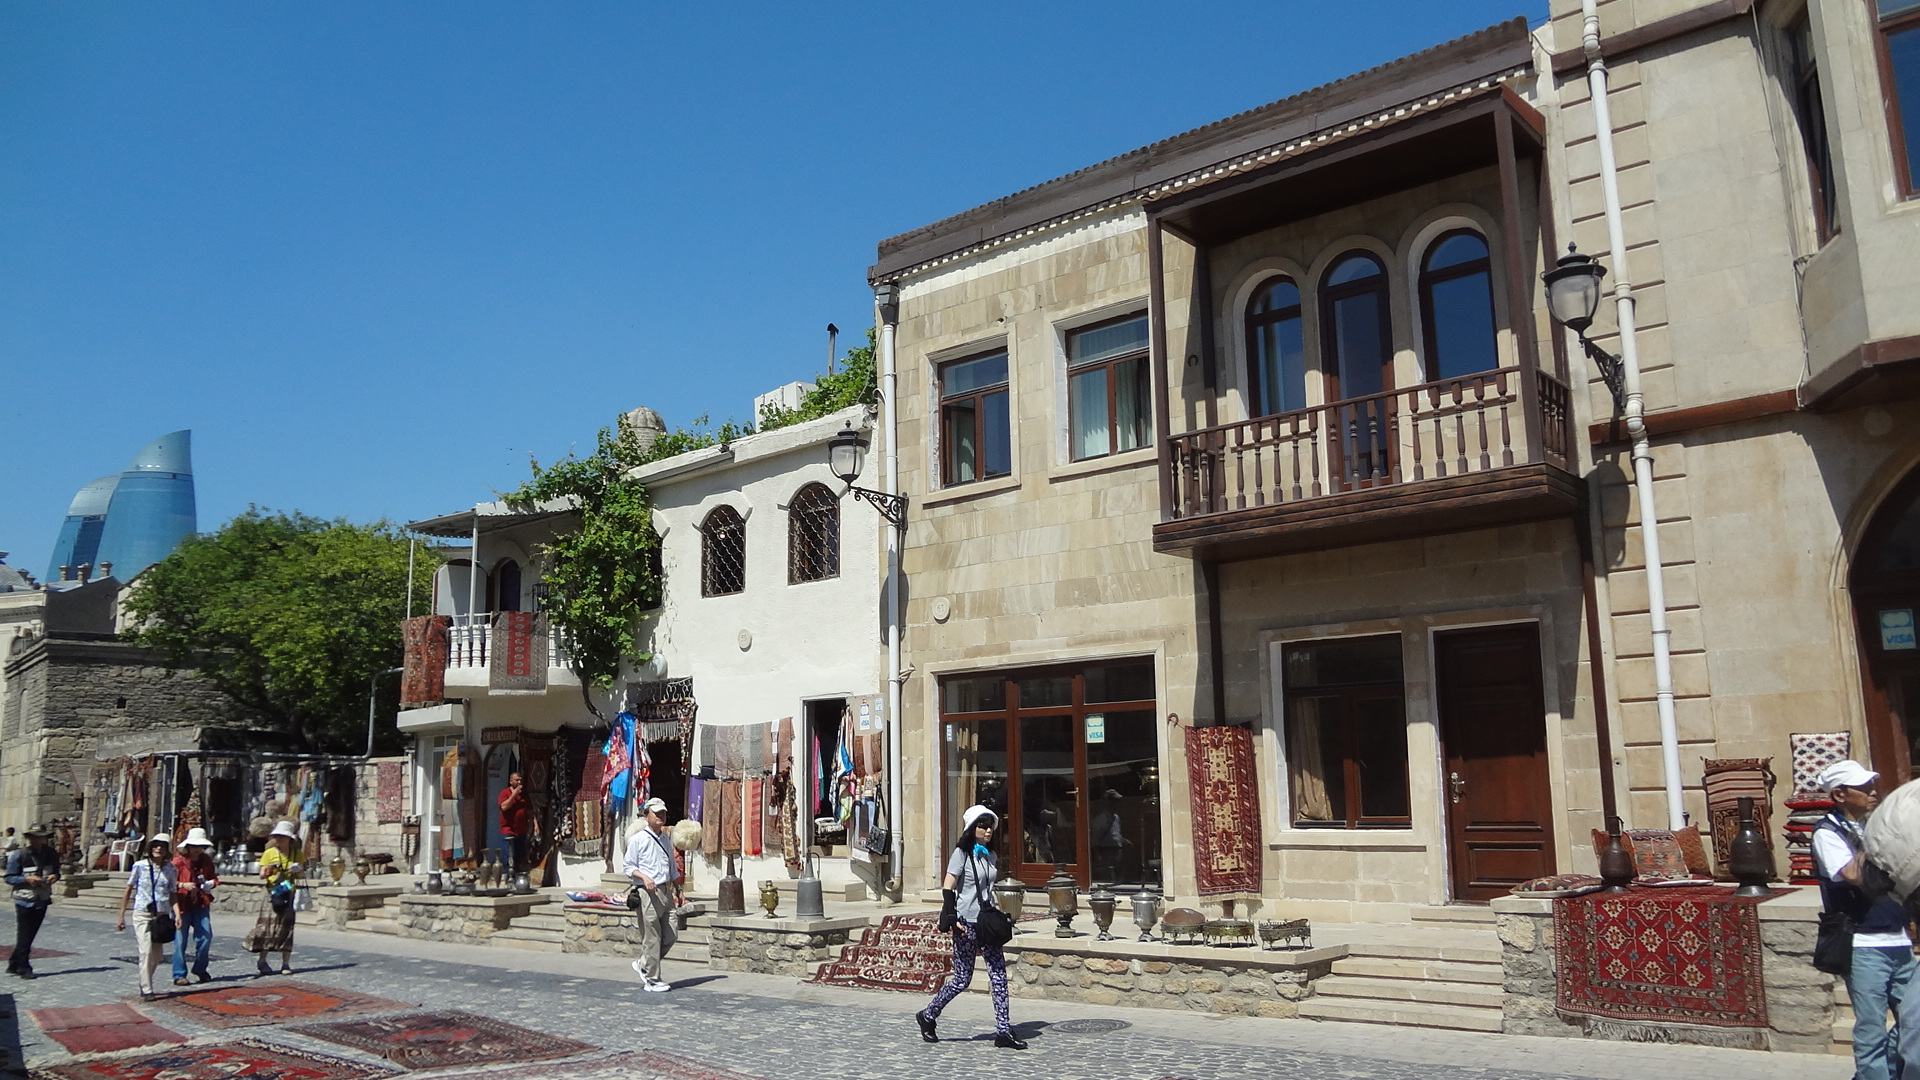 Stroolling in the old town, Baku | weepingredorger